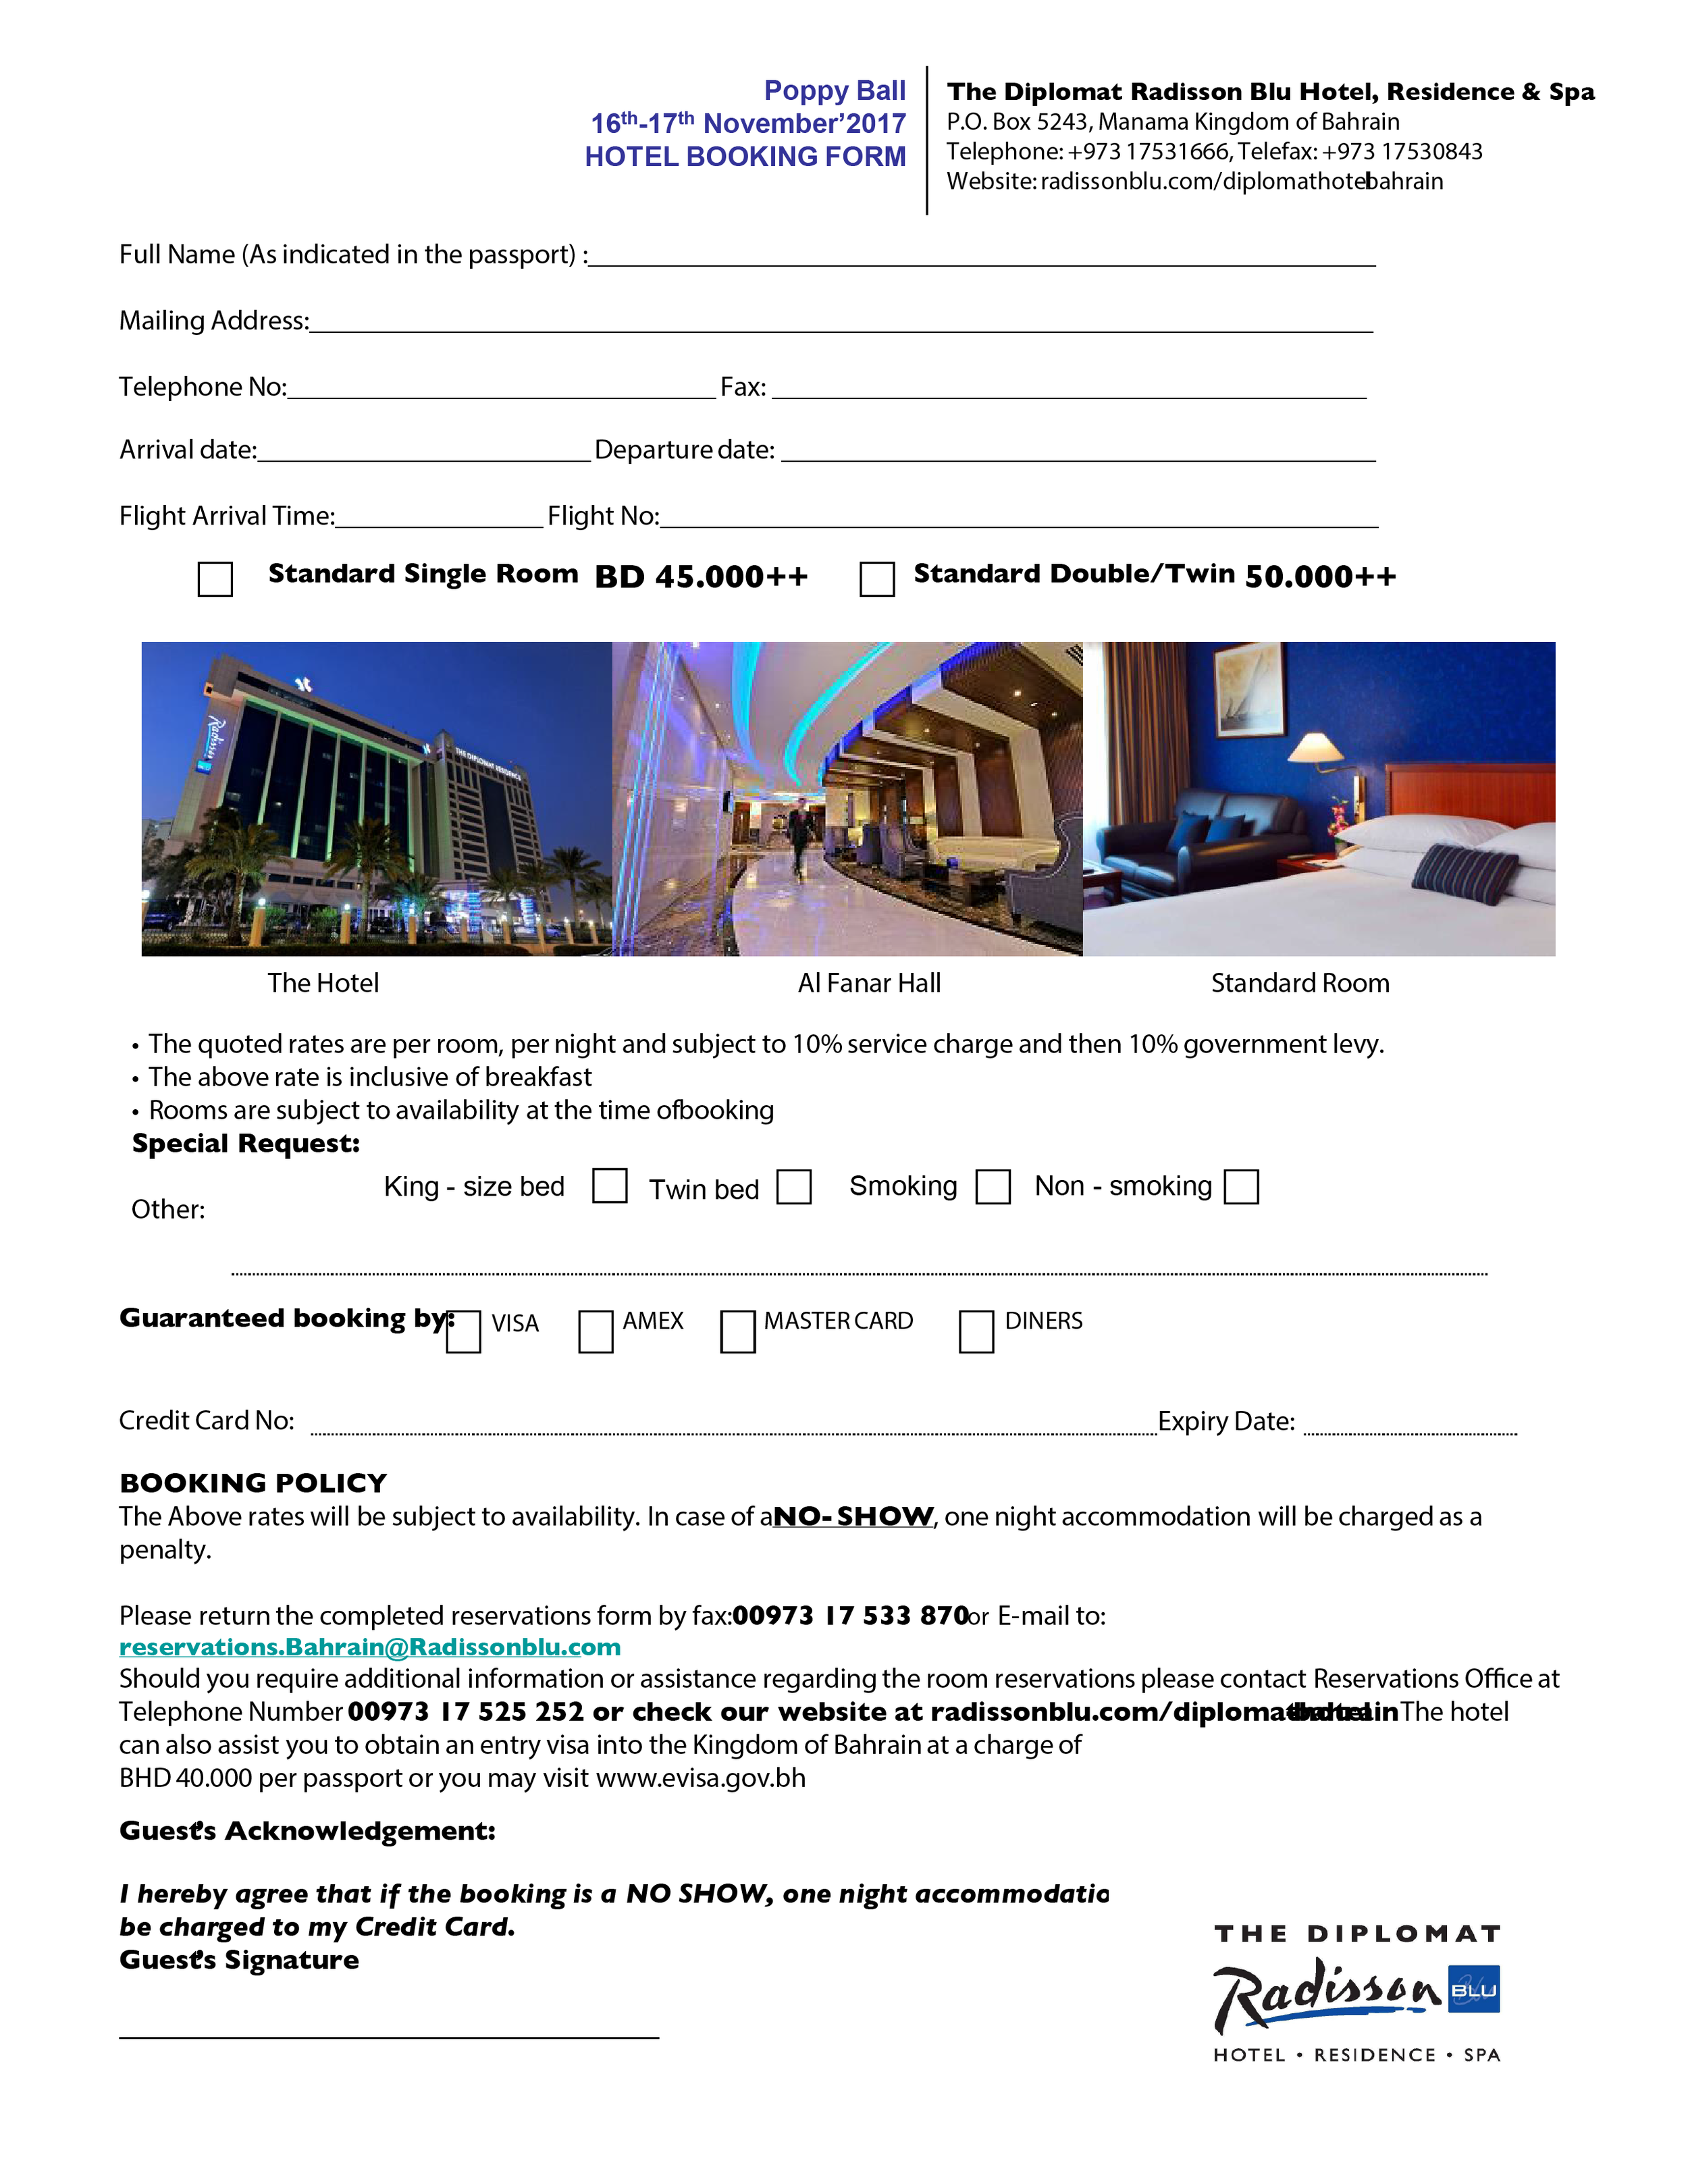 Poppy ball booking form-01.png